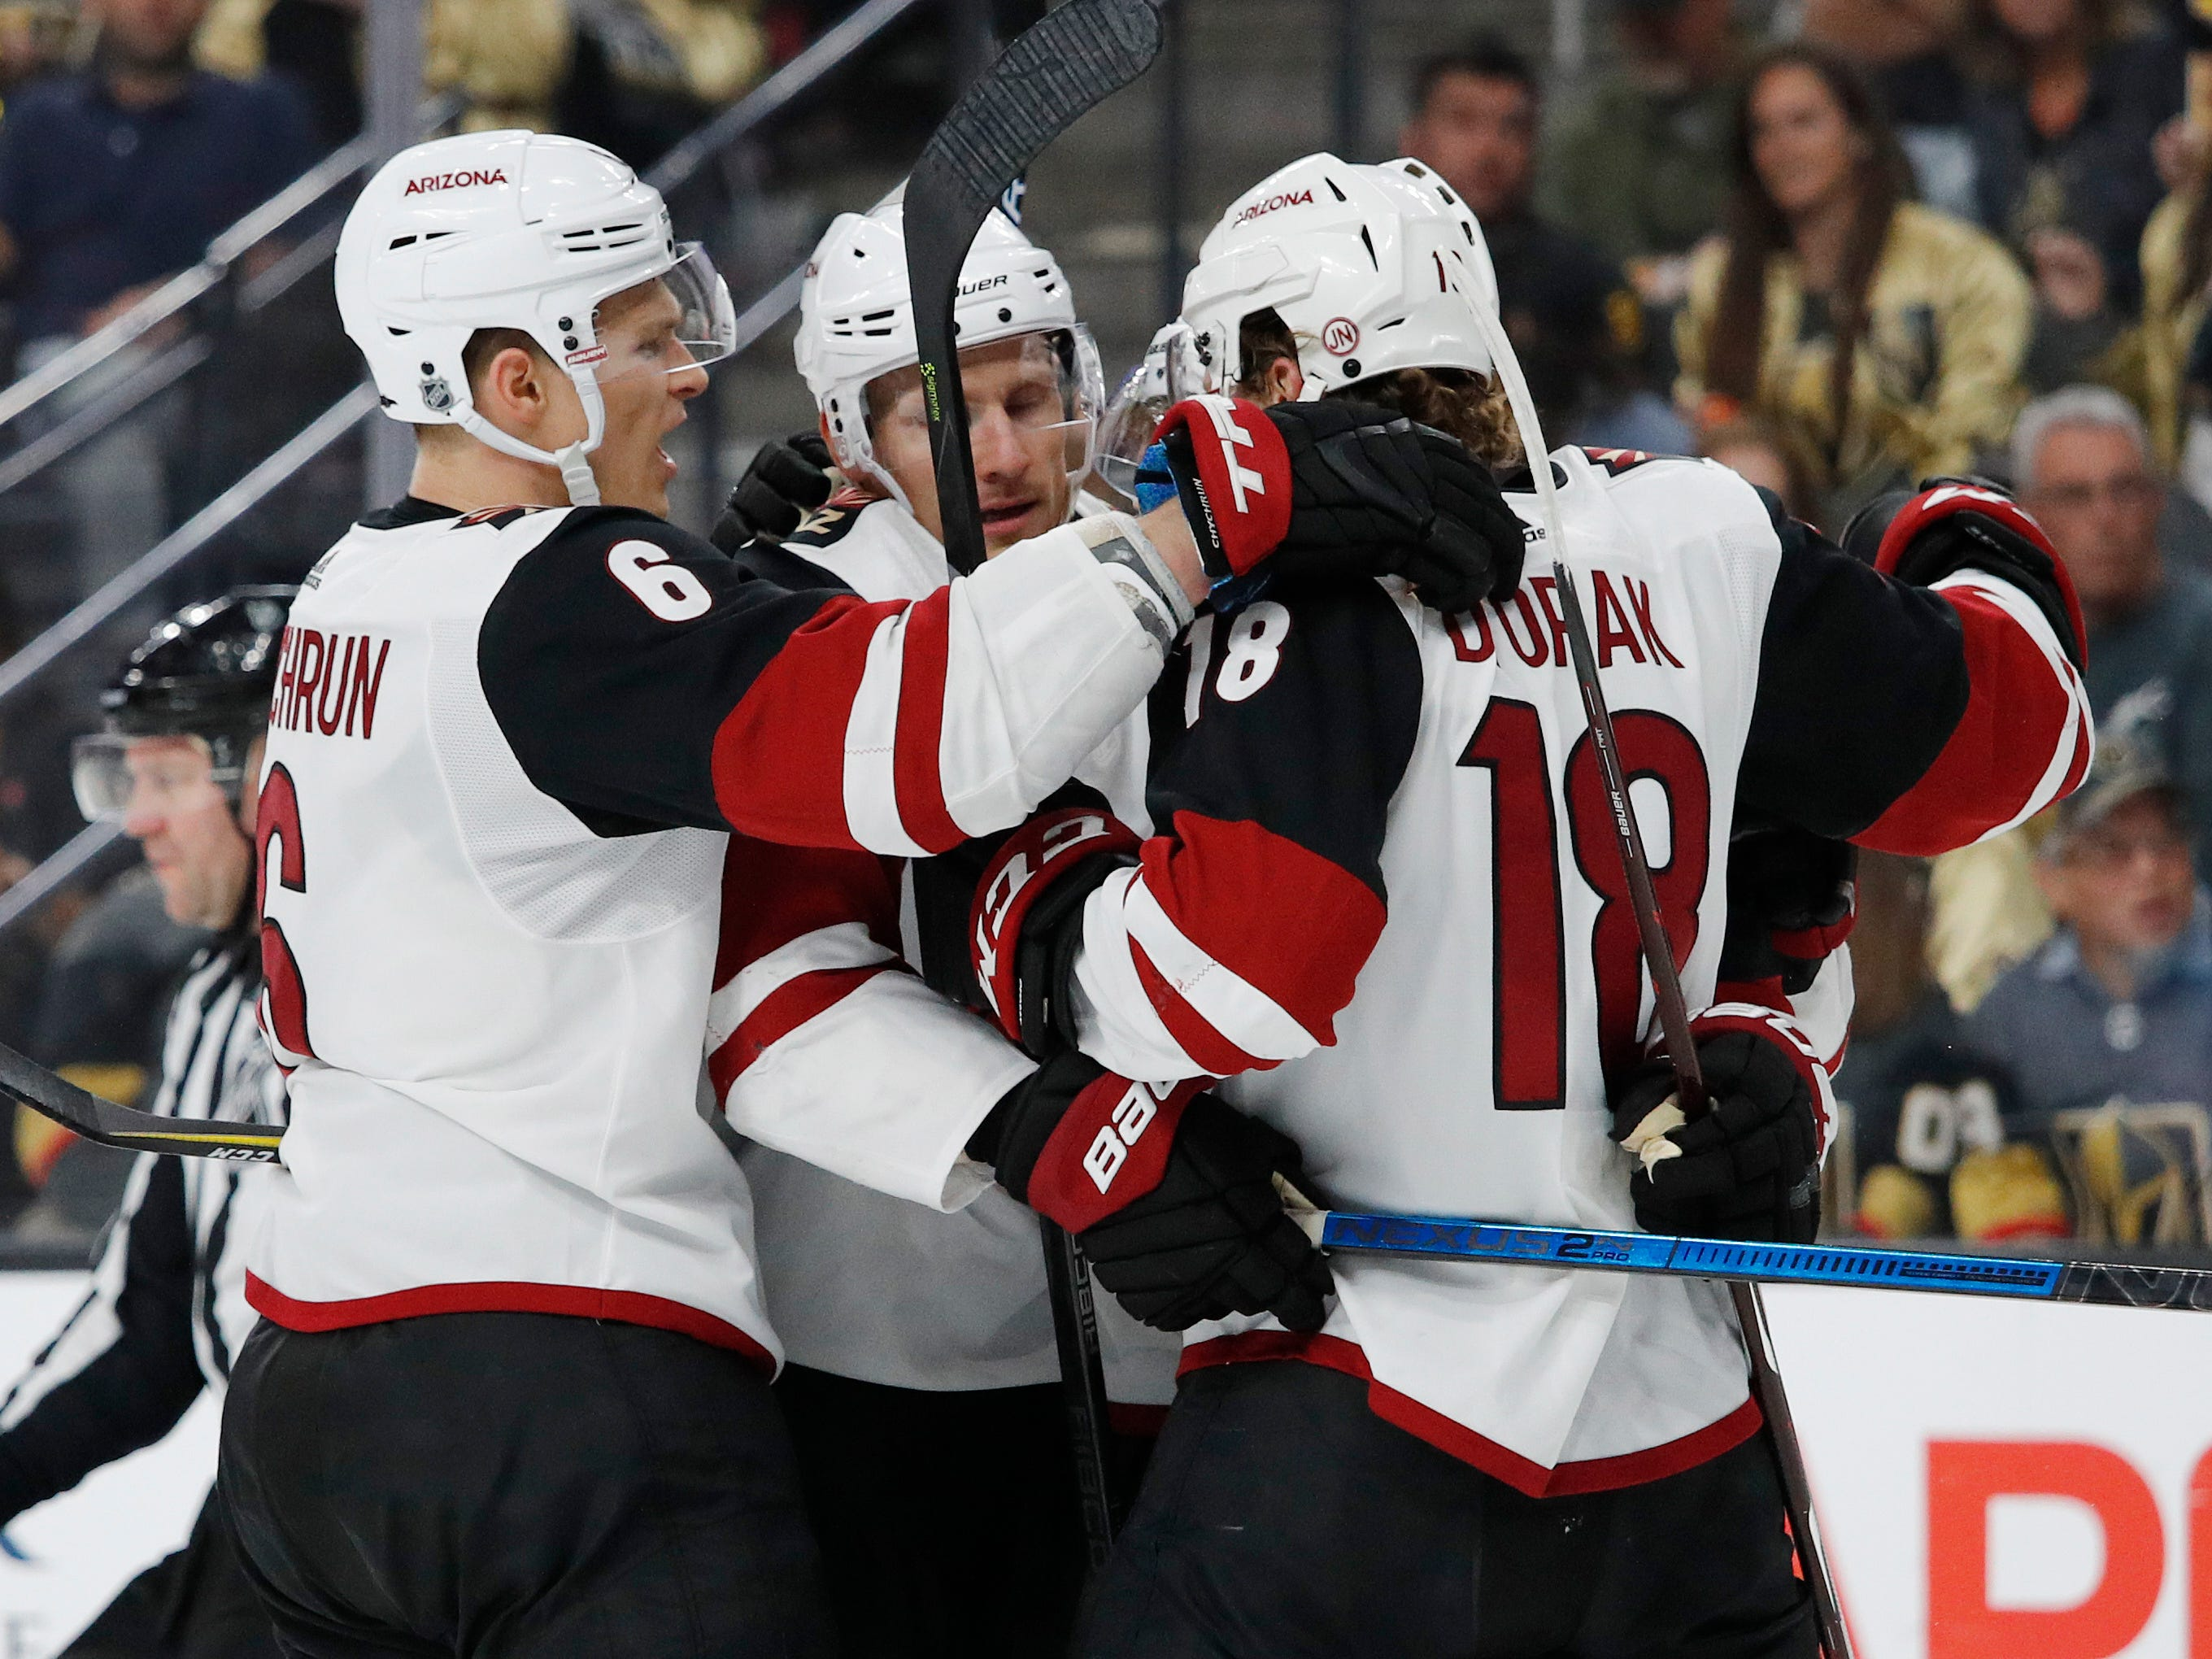 Arizona Coyotes celebrate after right wing Richard Panik, second from left, scored against the Vegas Golden Knights during the first period of an NHL hockey game Thursday, April 4, 2019, in Las Vegas.